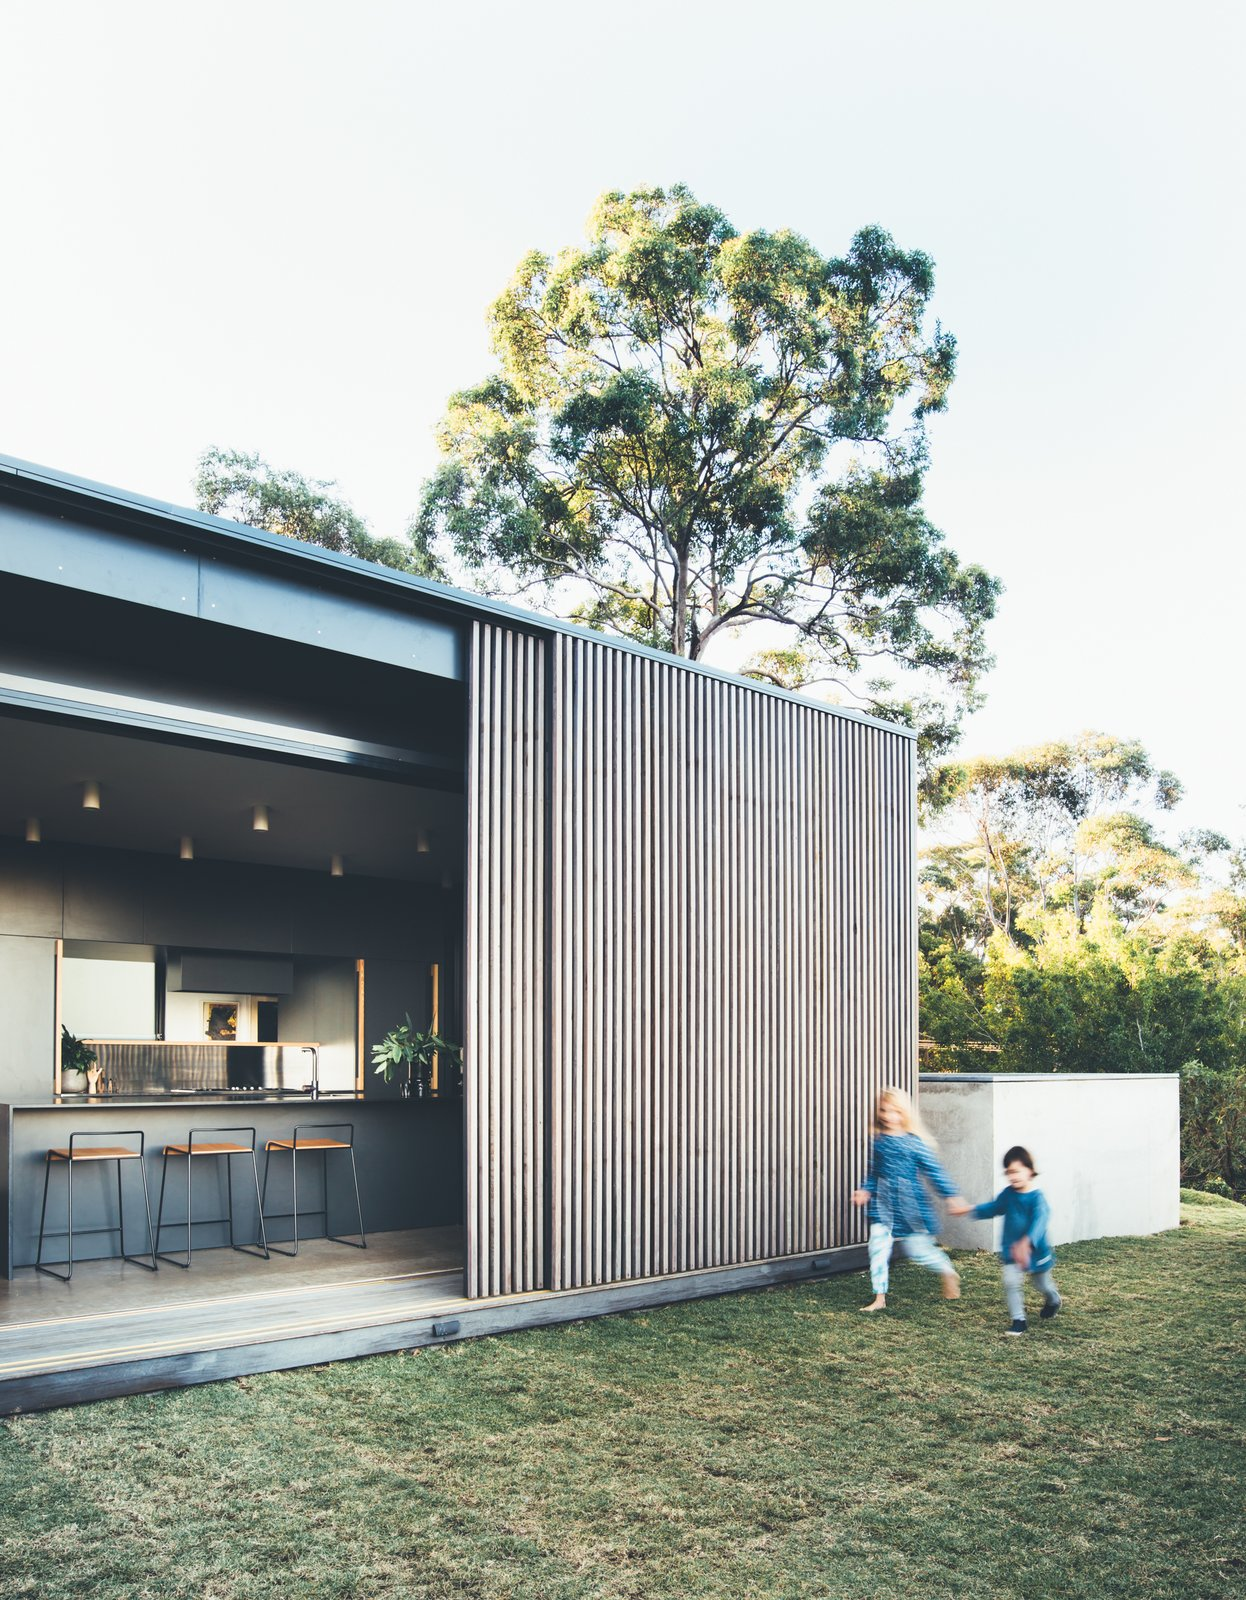 Exterior, House Building Type, Wood Siding Material, and Flat RoofLine During the winter, the family can slide the screens open to let in the winter sun, in summer they can close the screens to provide shade, while still maintaining views and breezes through the timber battens.  Best Photos from This Australian Abode Is a Glass Pavilion Wrapped in Sliding Hardwood Screens